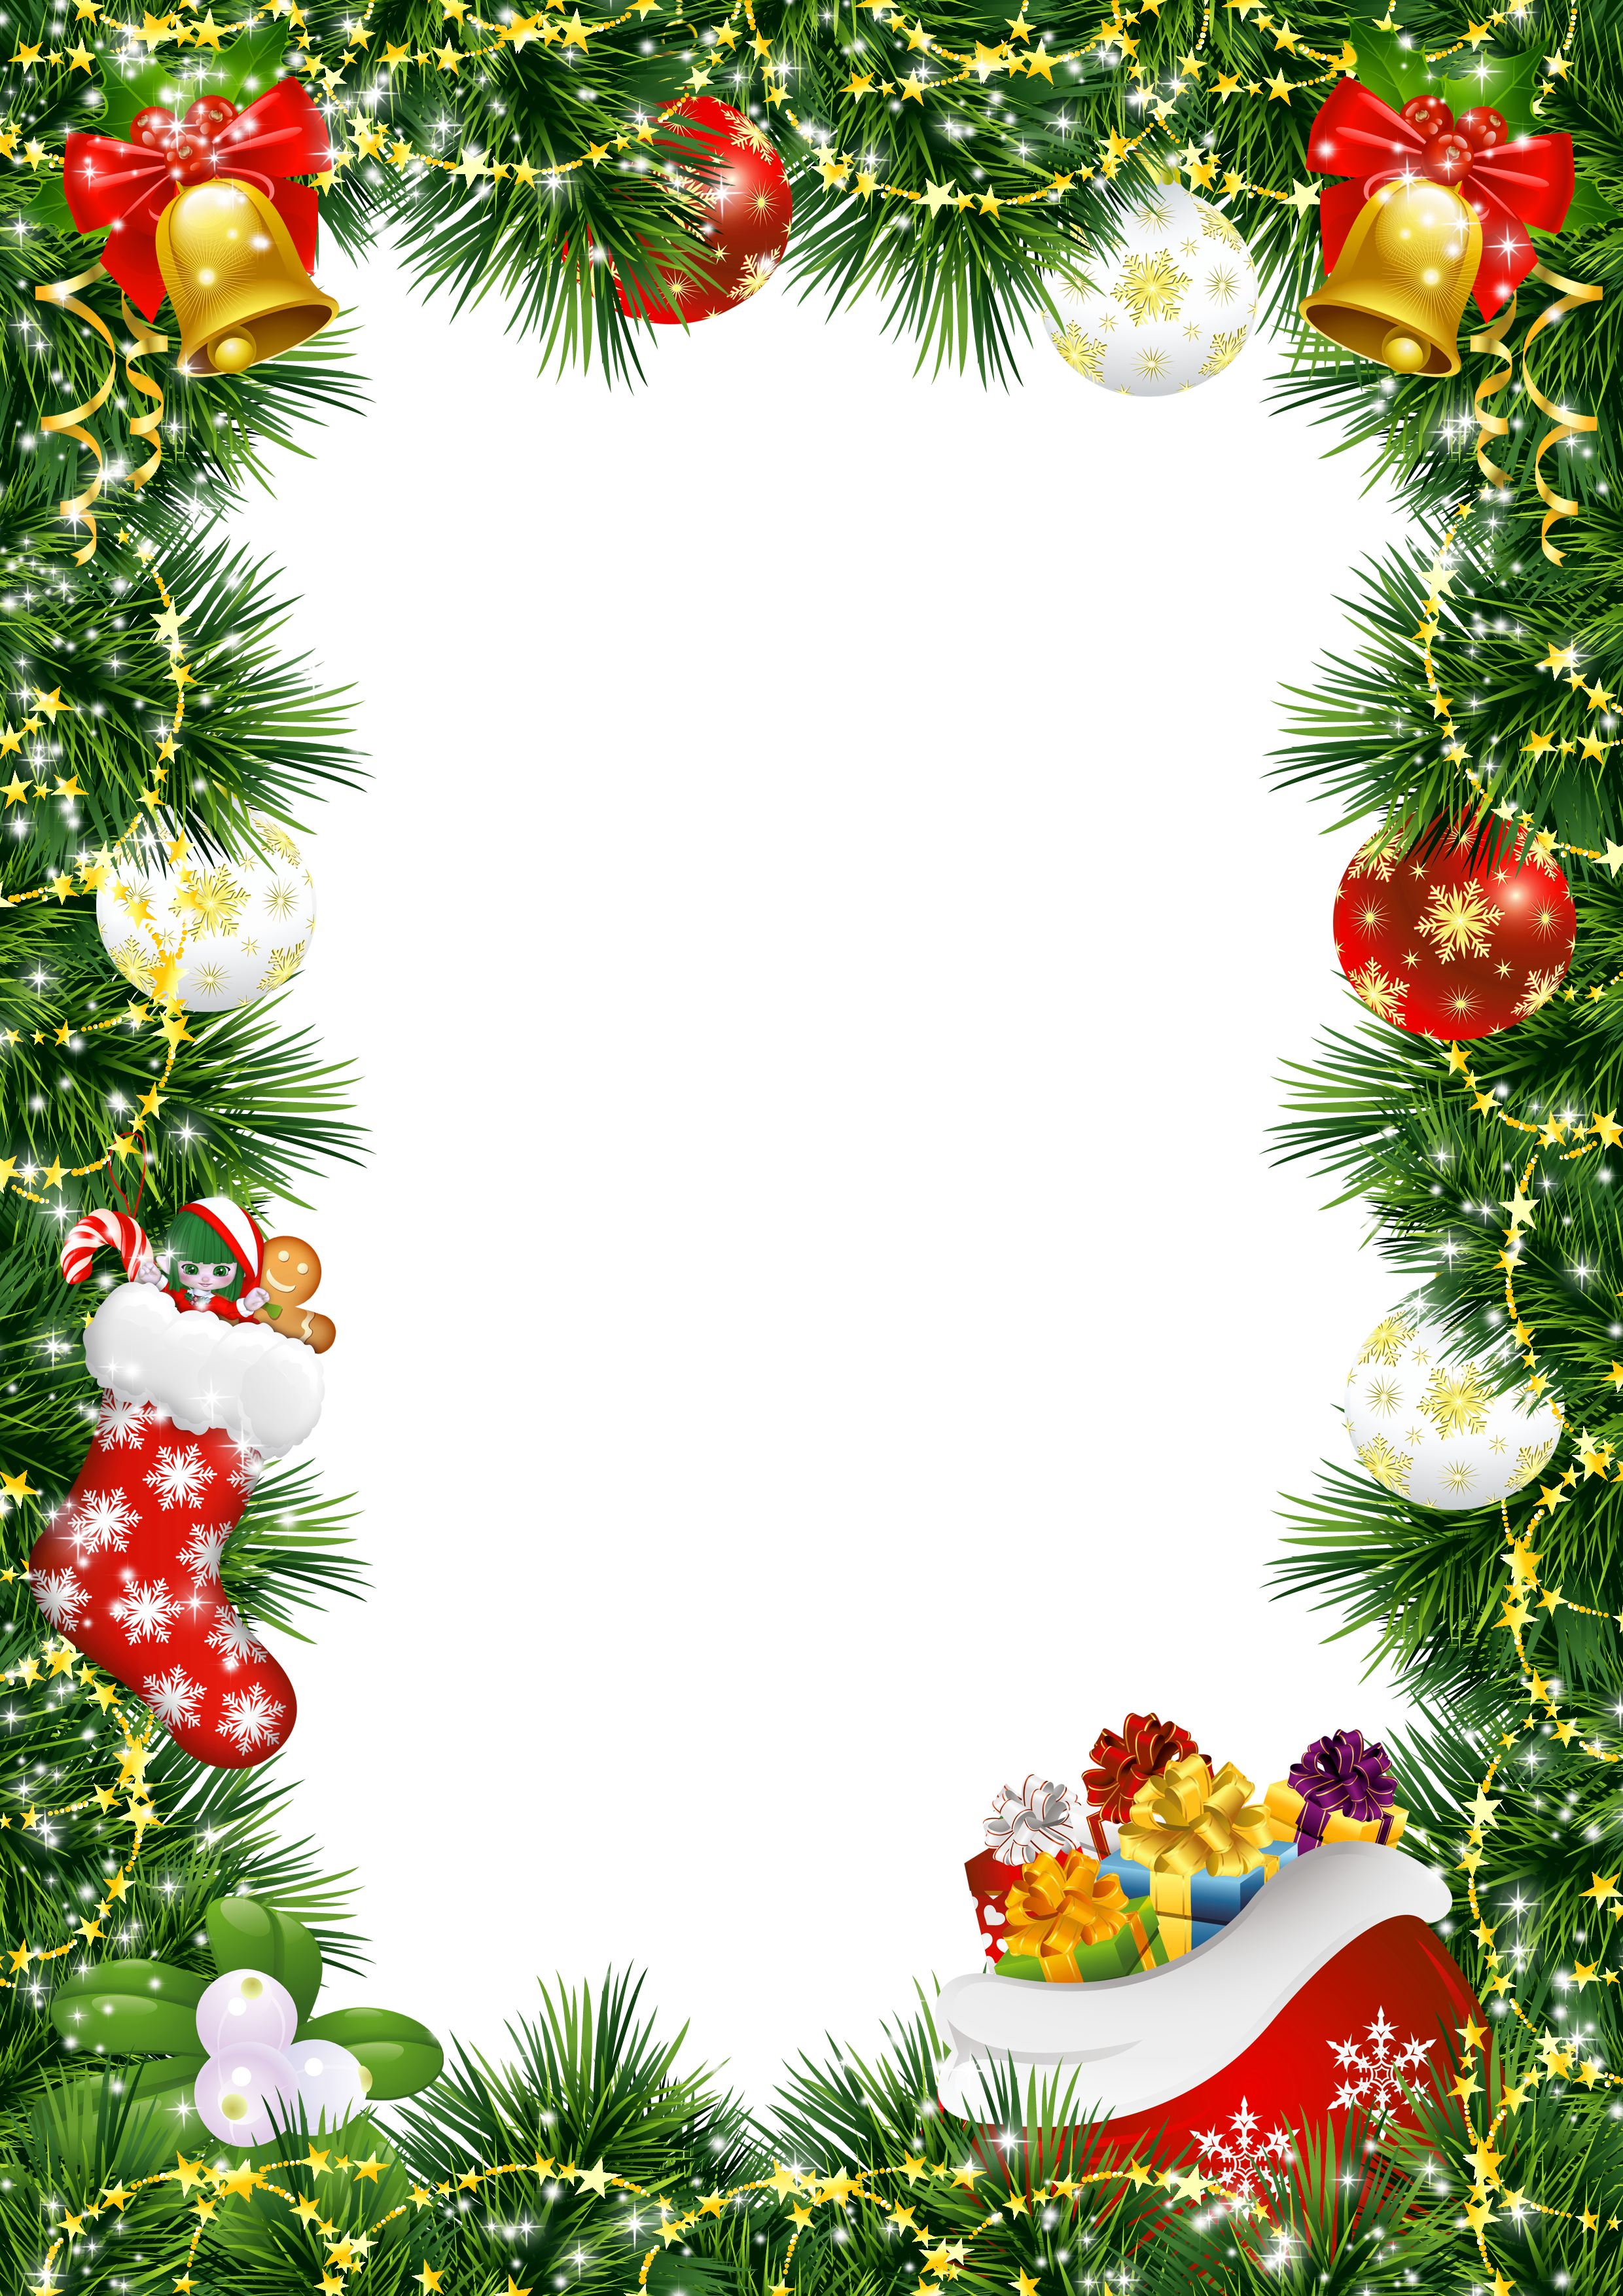 Christmas ornament border png. Photo frame with ornaments